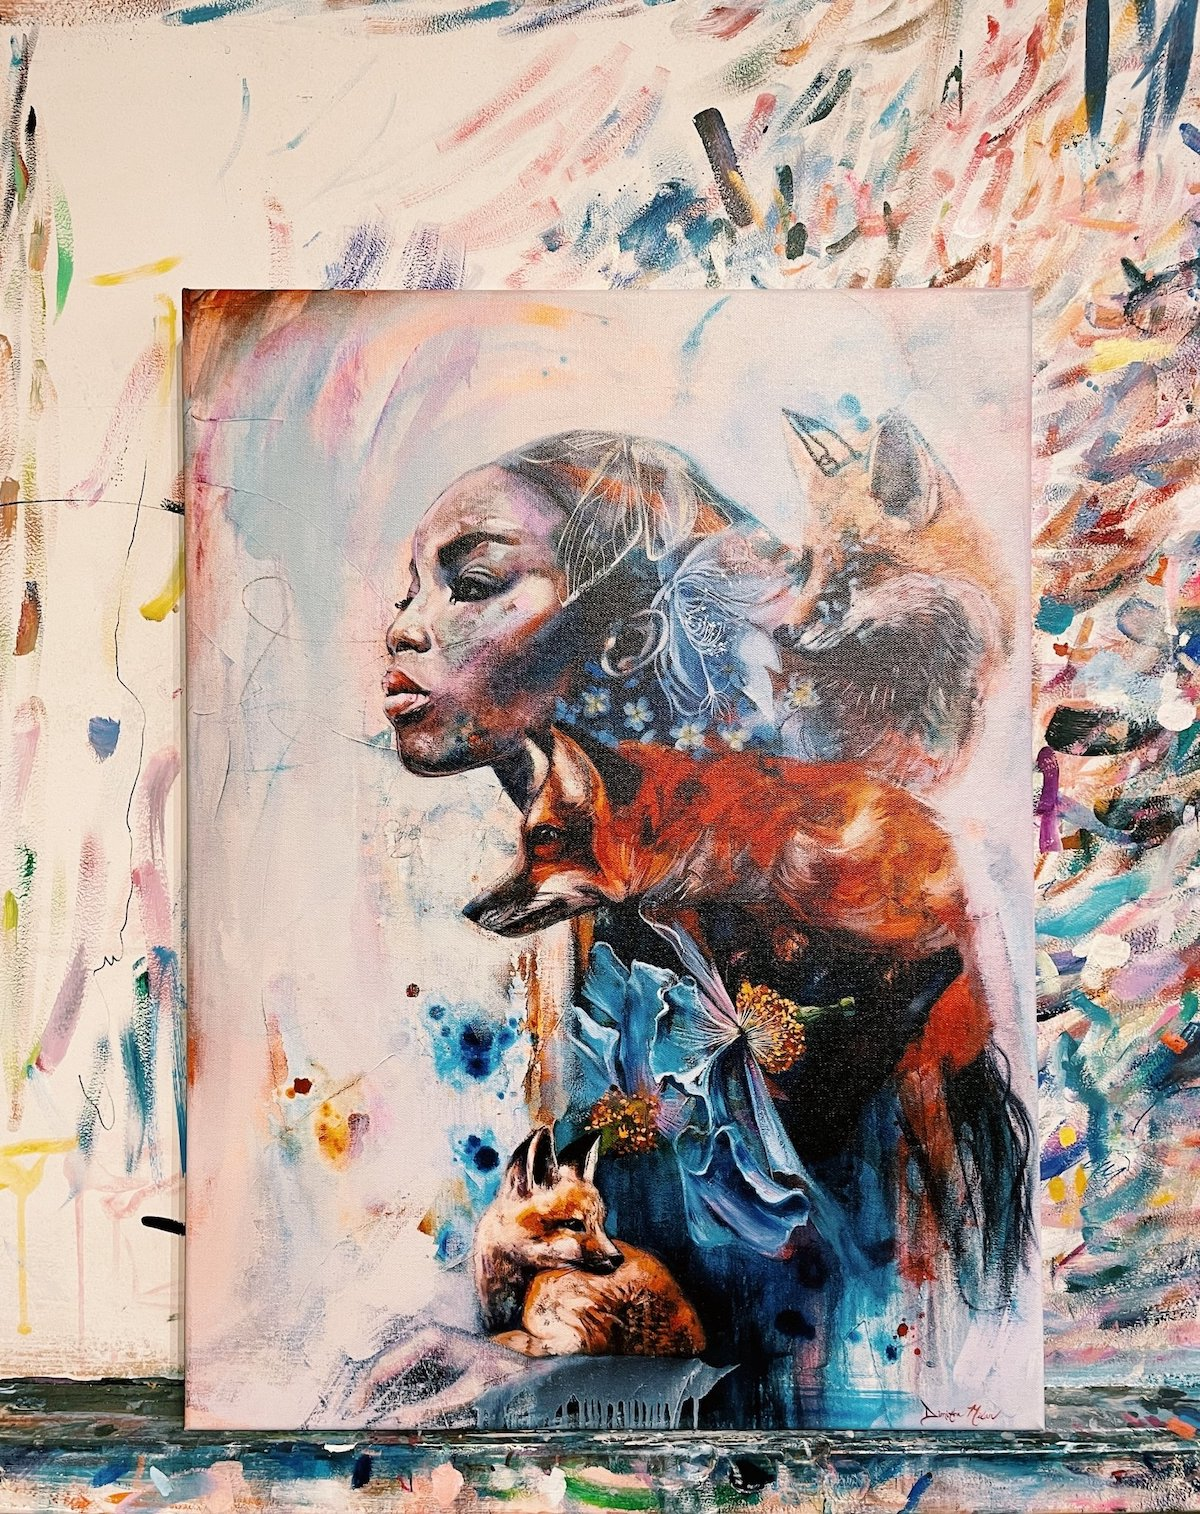 Ethereal Abstract Paintings by Dimitra Milan